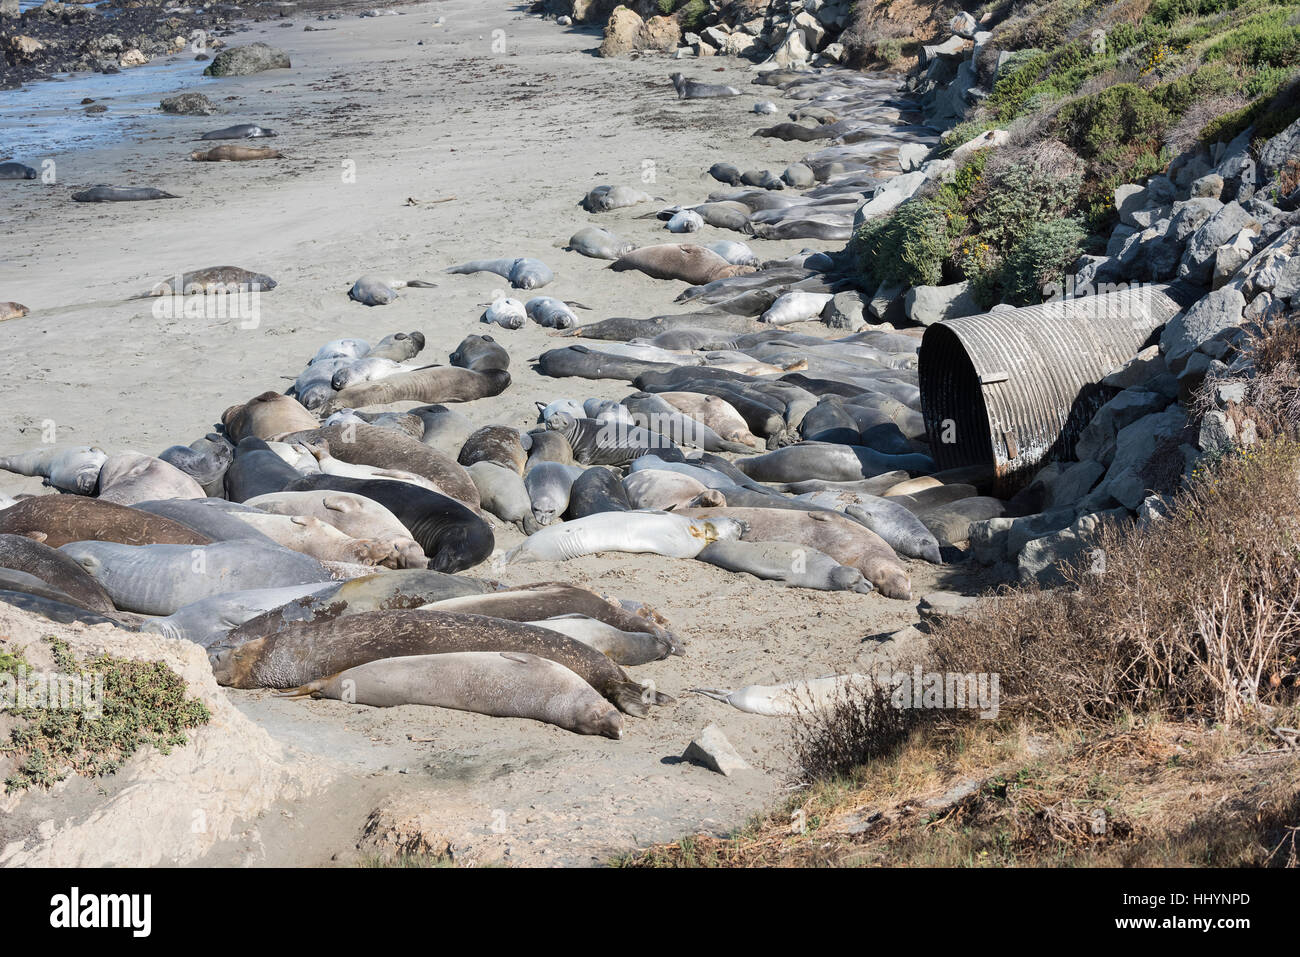 northern elephant seals, Mirounga angustirostris, bask on the beach during their molt, in front of a large storm - Stock Image